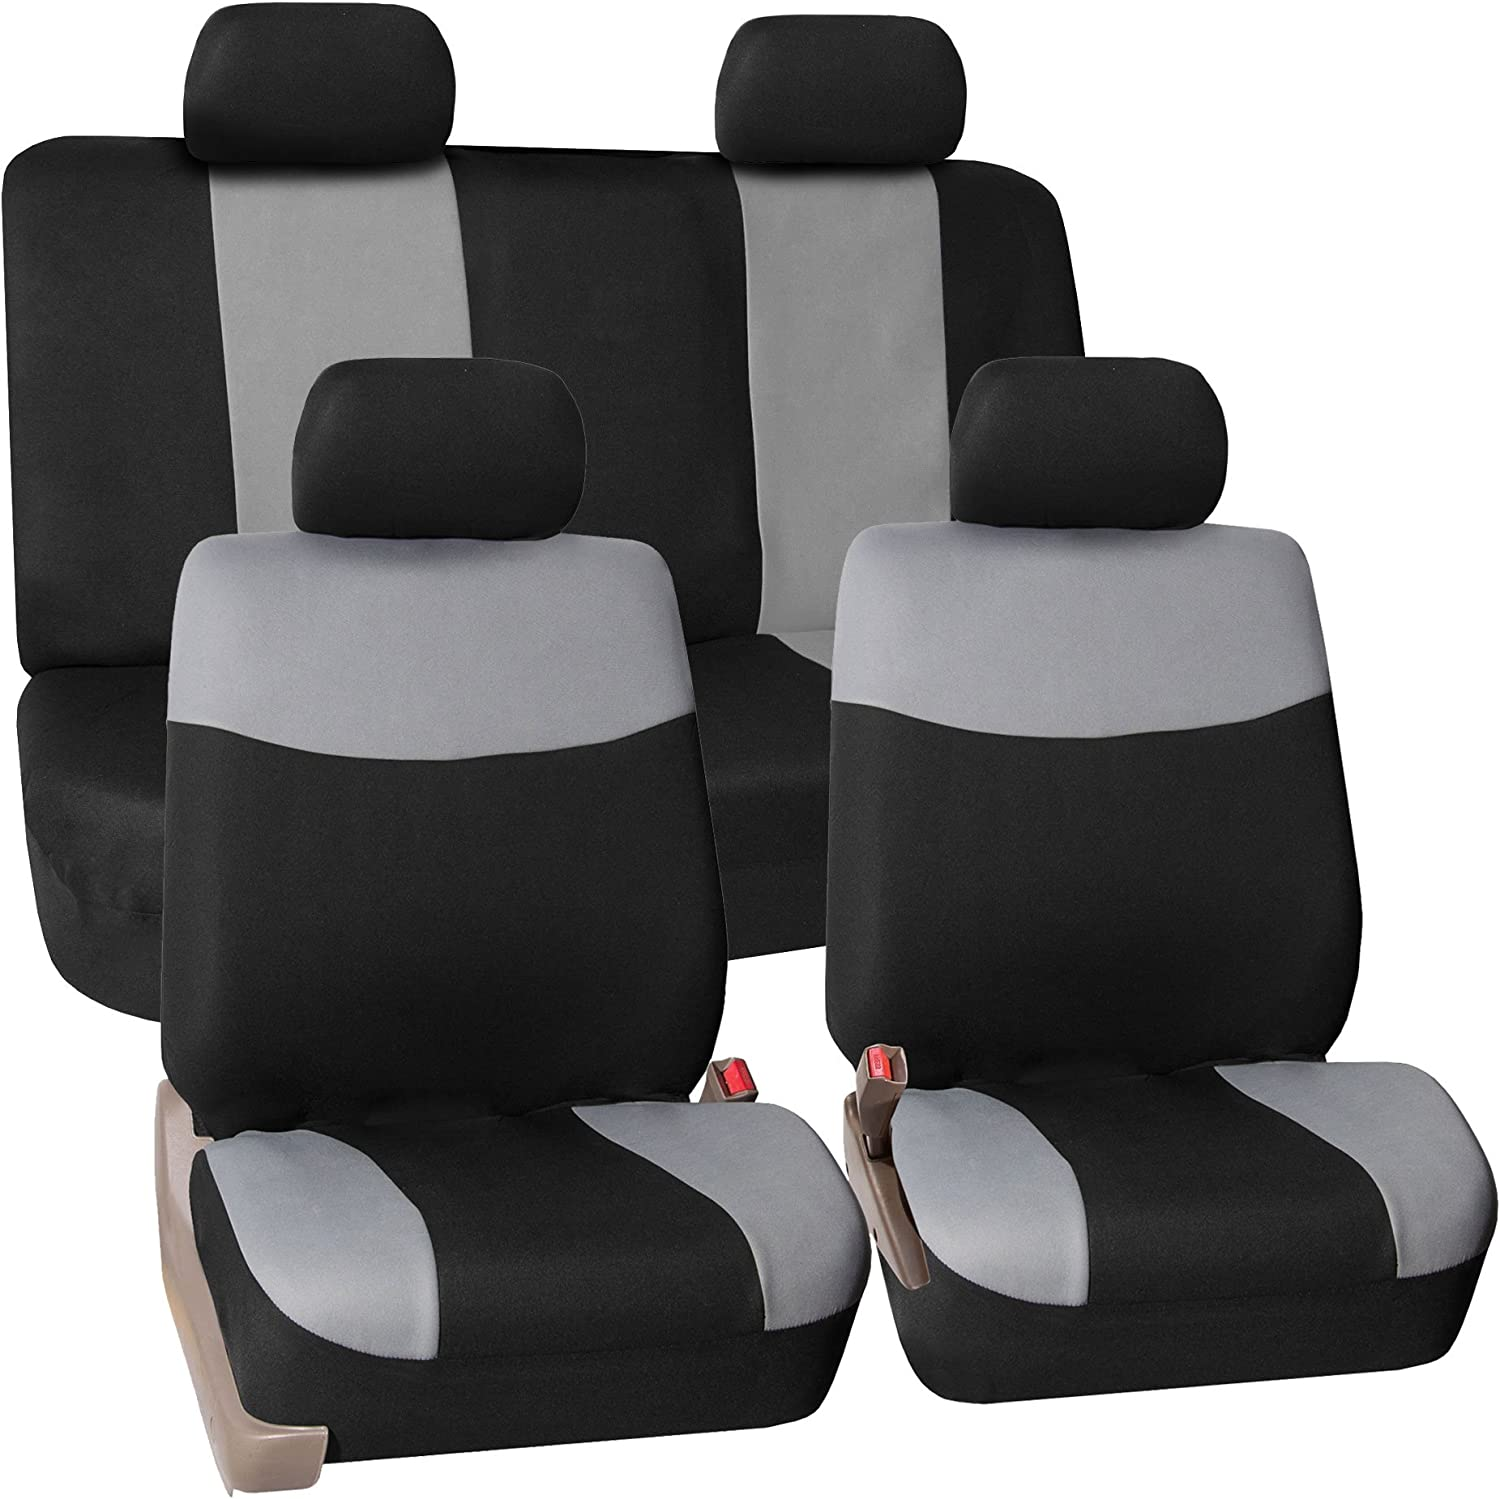 FH Group Stylish Cloth Full Set Car Seat Covers, Gray/Black- Fit Most Car, Truck, SUV Van